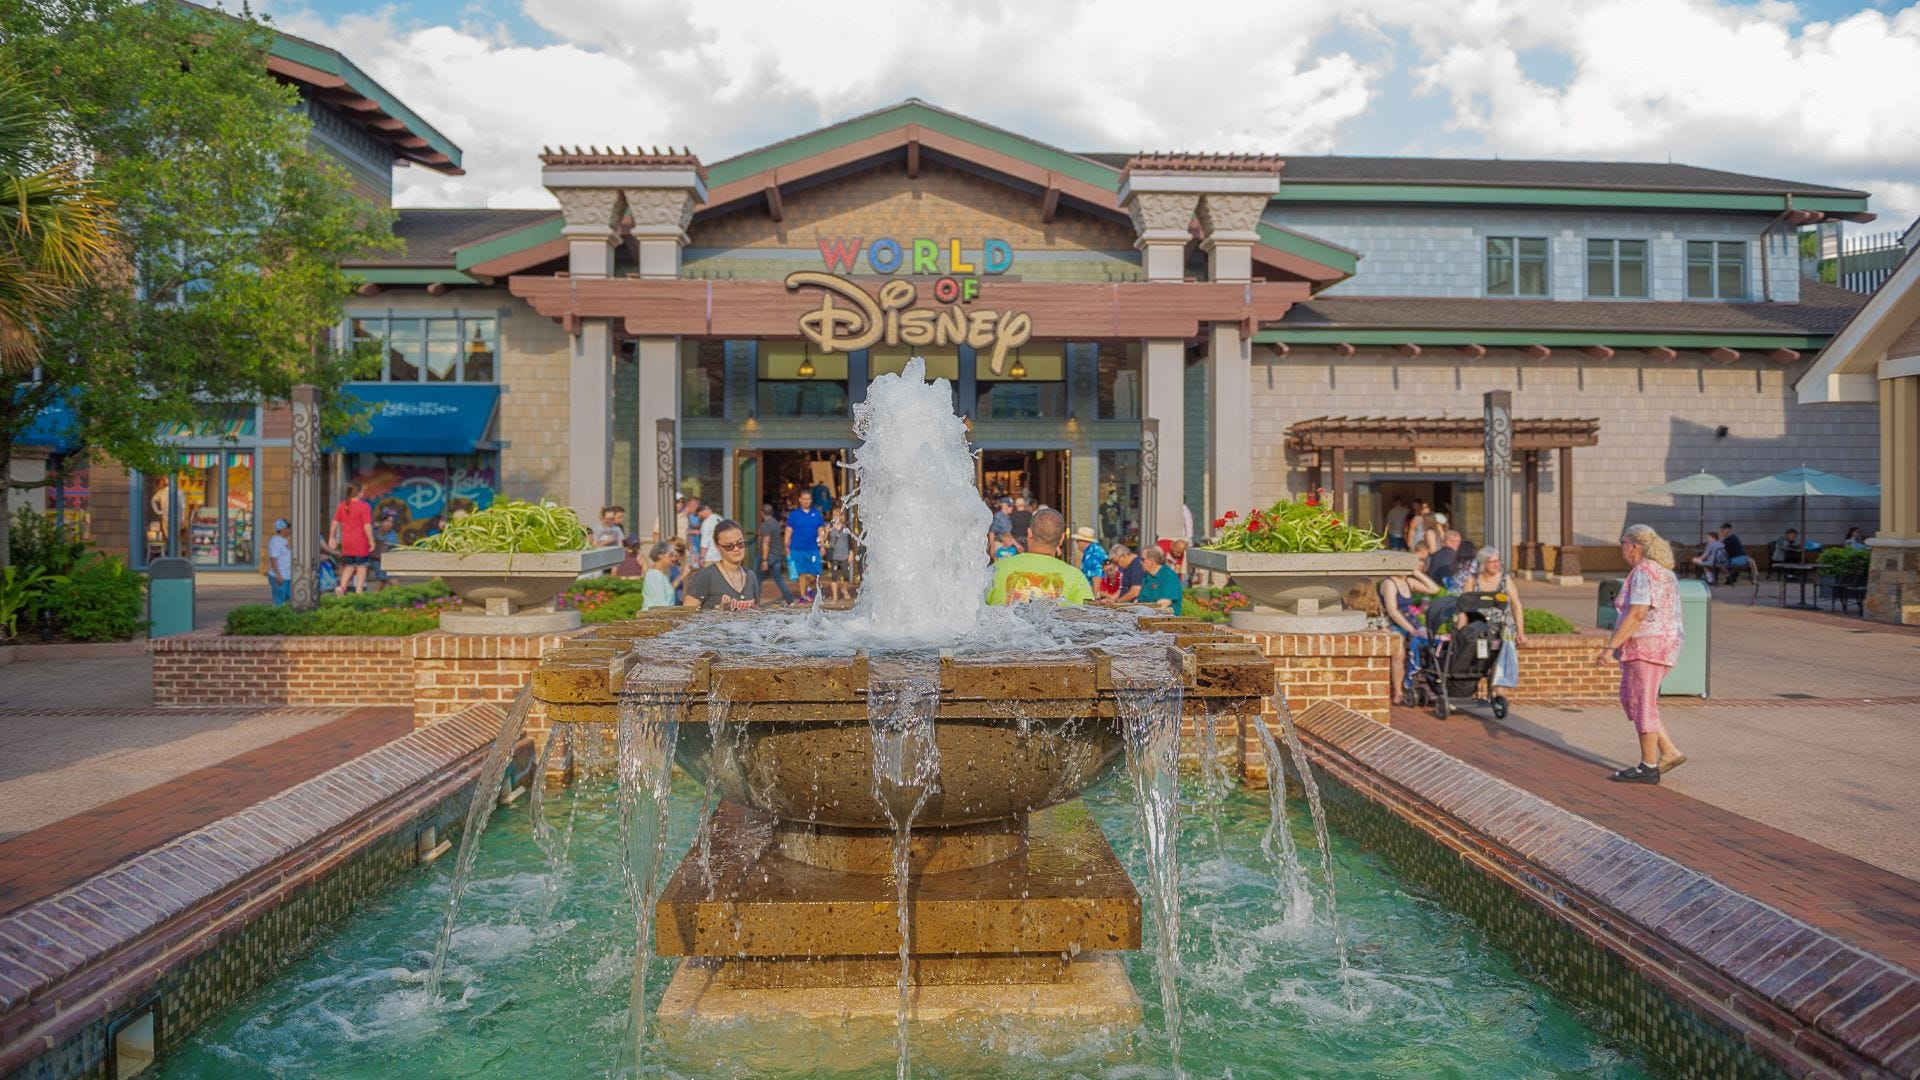 The World of Disney store and the fountain at Disney Springs in Orlando, Florida.